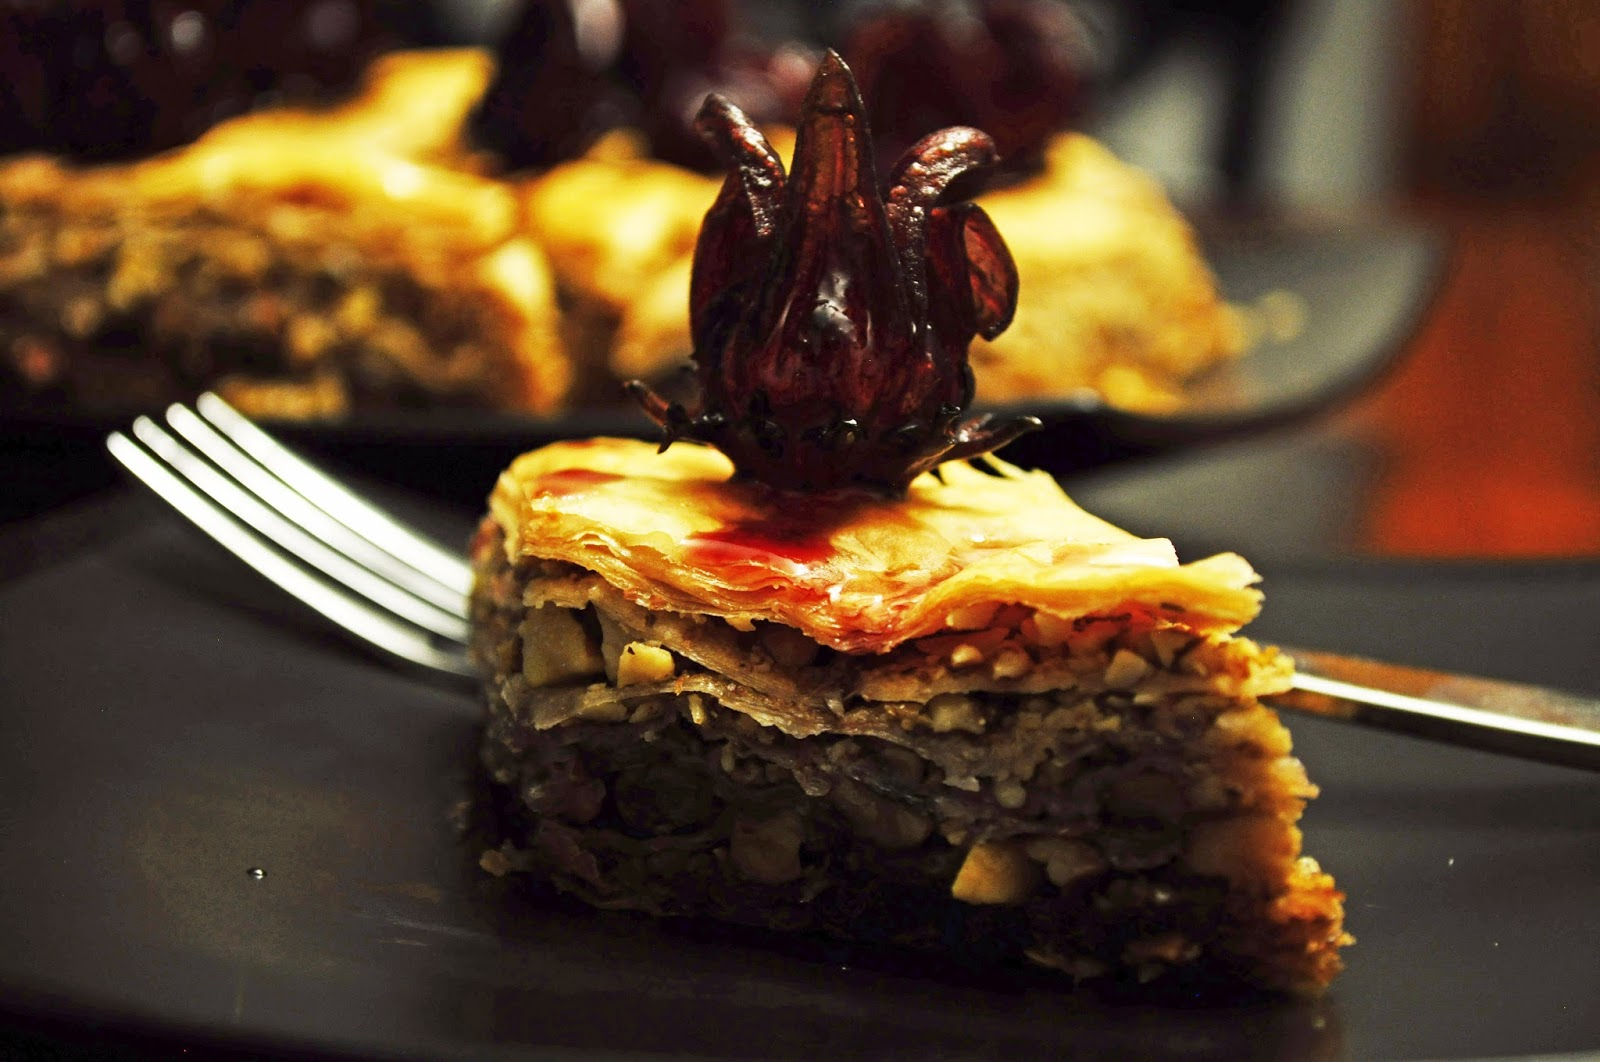 37 cooks january 2016 the wild hibiscus flowers in syrup are a show stopper and tasty too this is a basic baklava recipe with the addition of wild hibiscus syrup and garnished dhlflorist Choice Image